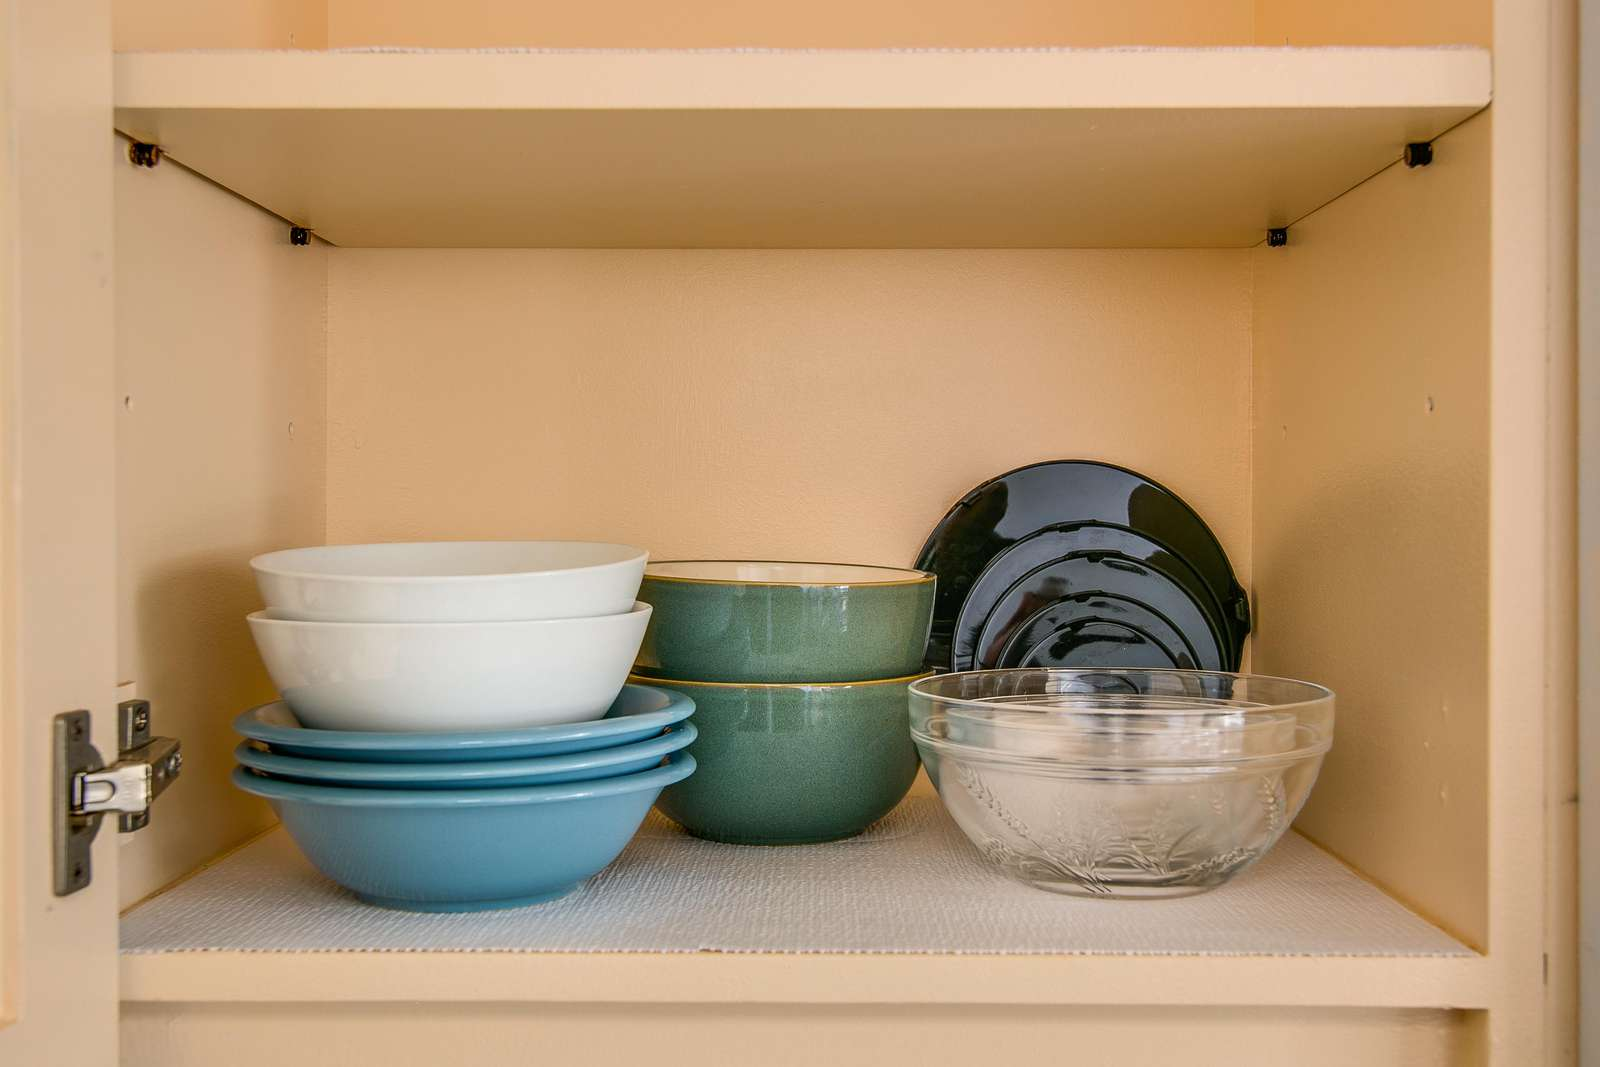 Plenty of dishes in the various cupboards